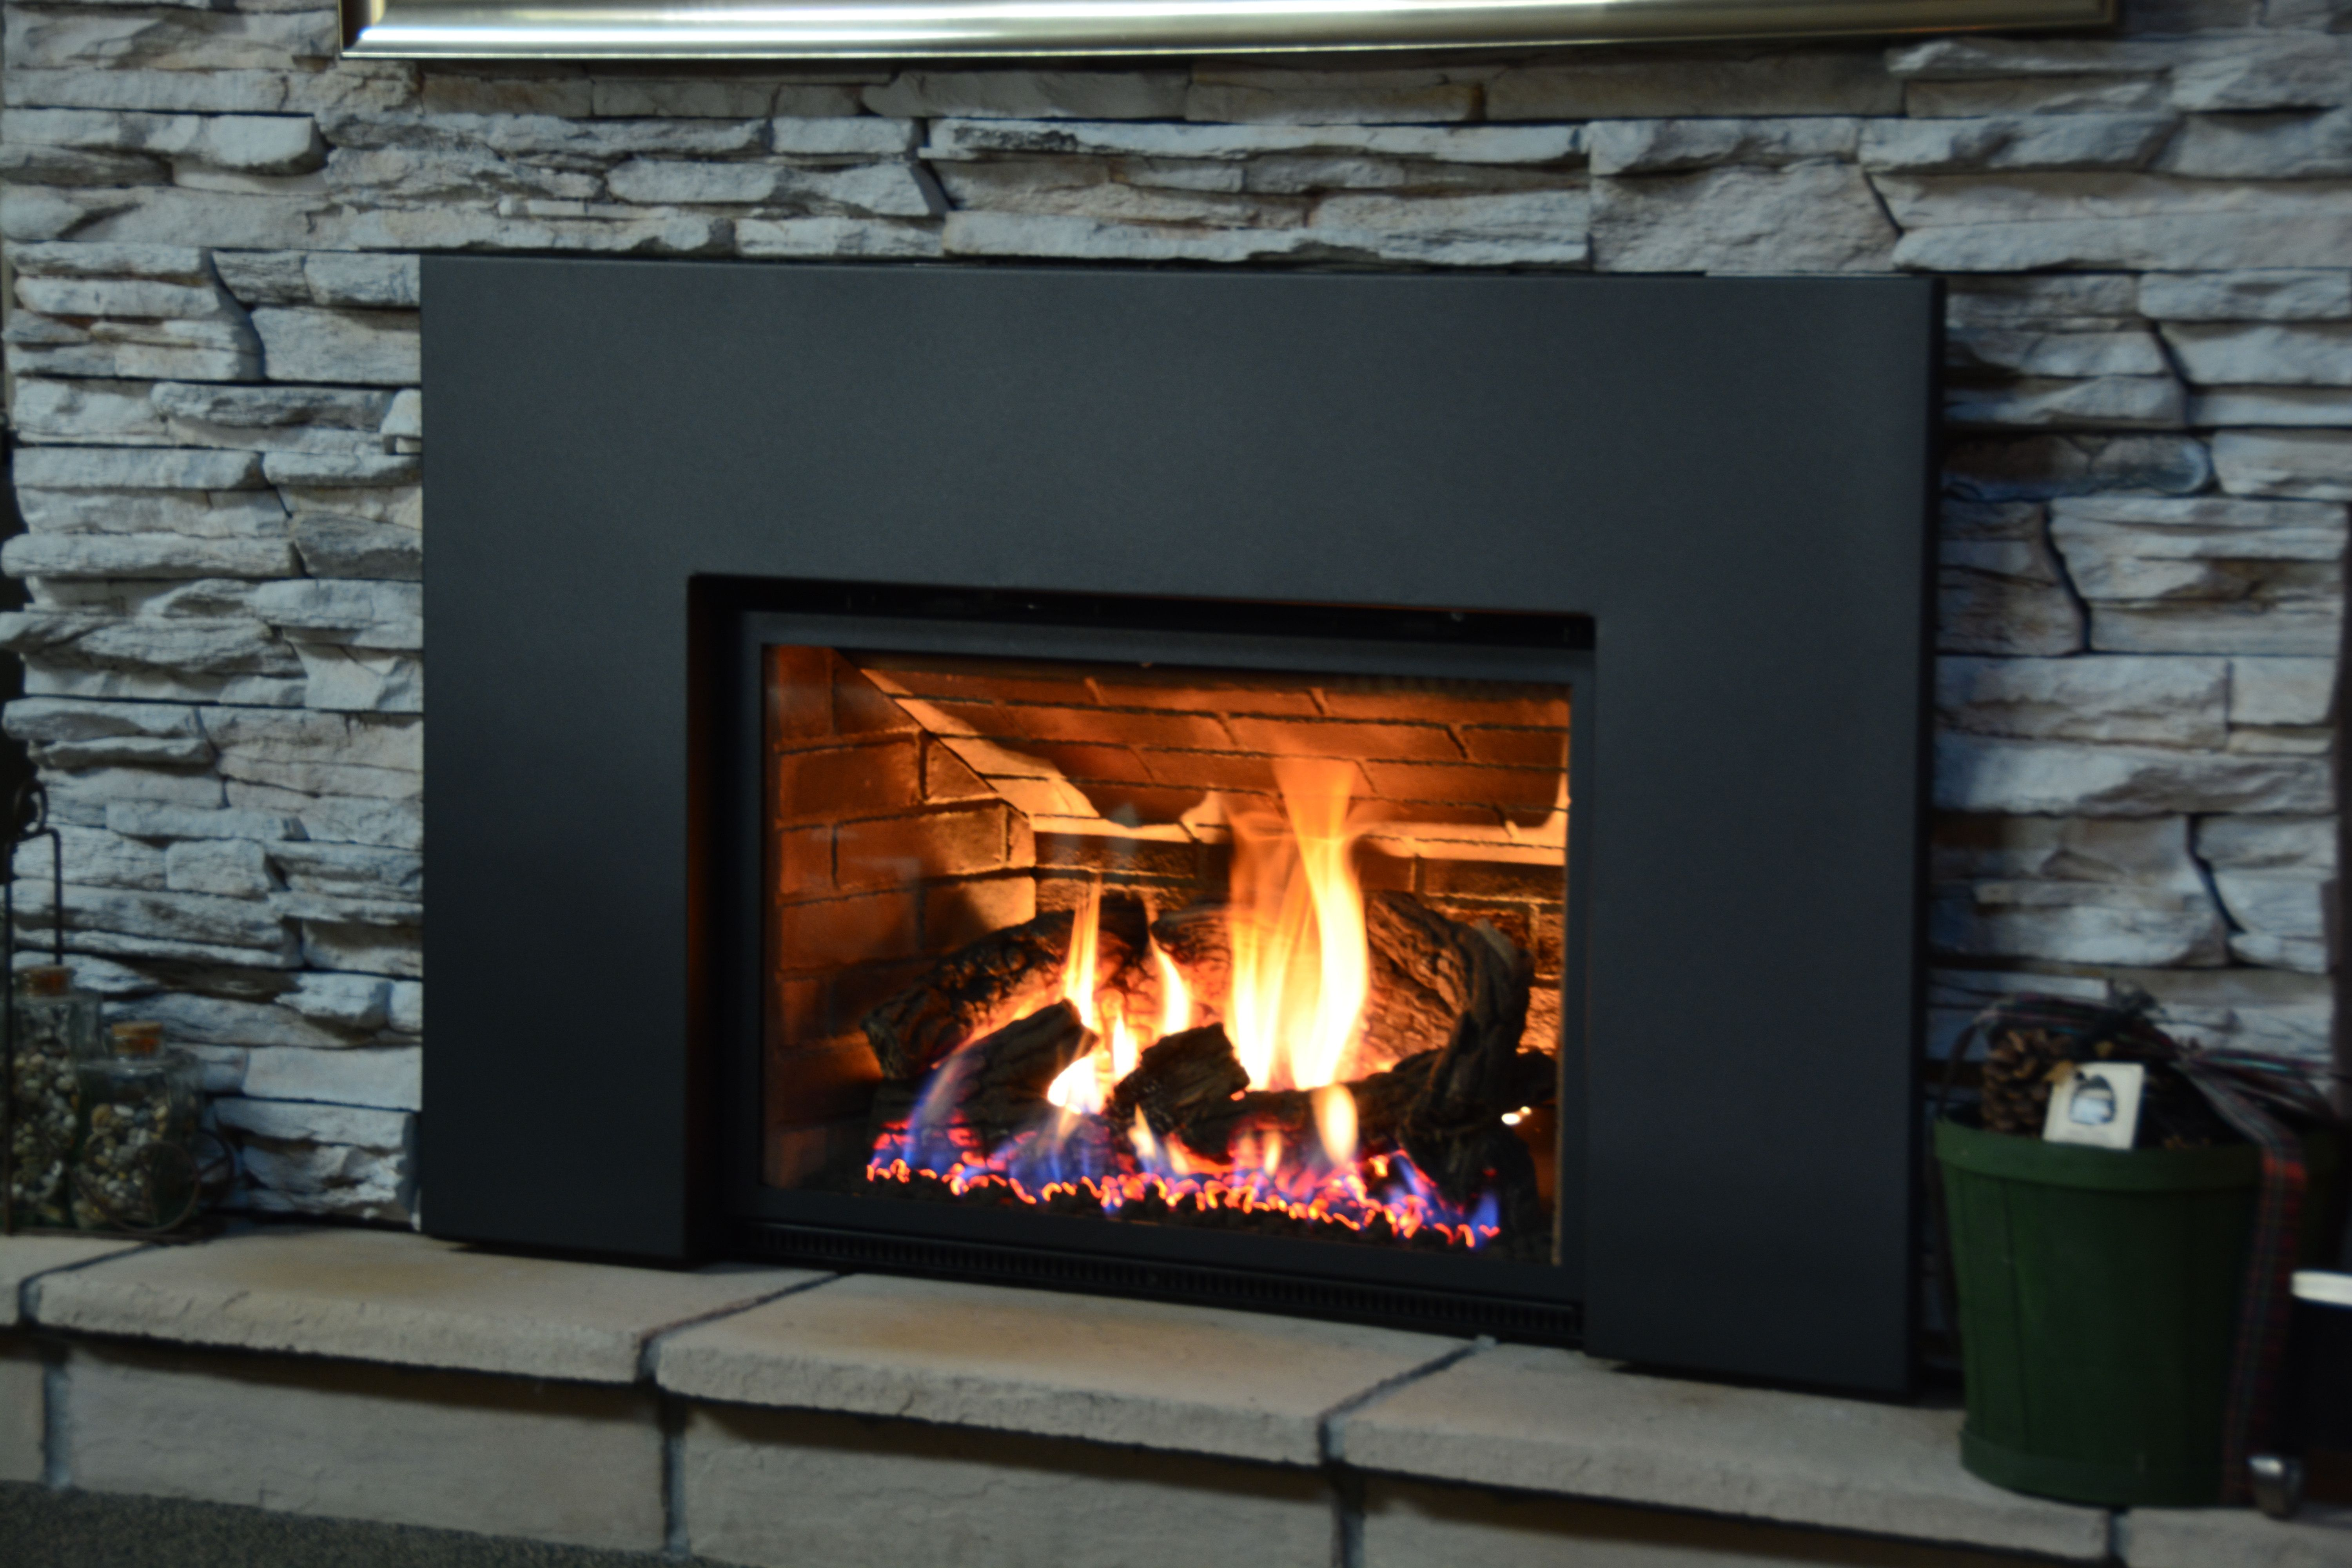 Adding A Fireplace Adding A Fireplace To A House Artificial Fireplace Best Fireplace Fireplace Insert Installation Fireplace Pictures Brick Fireplace Makeover